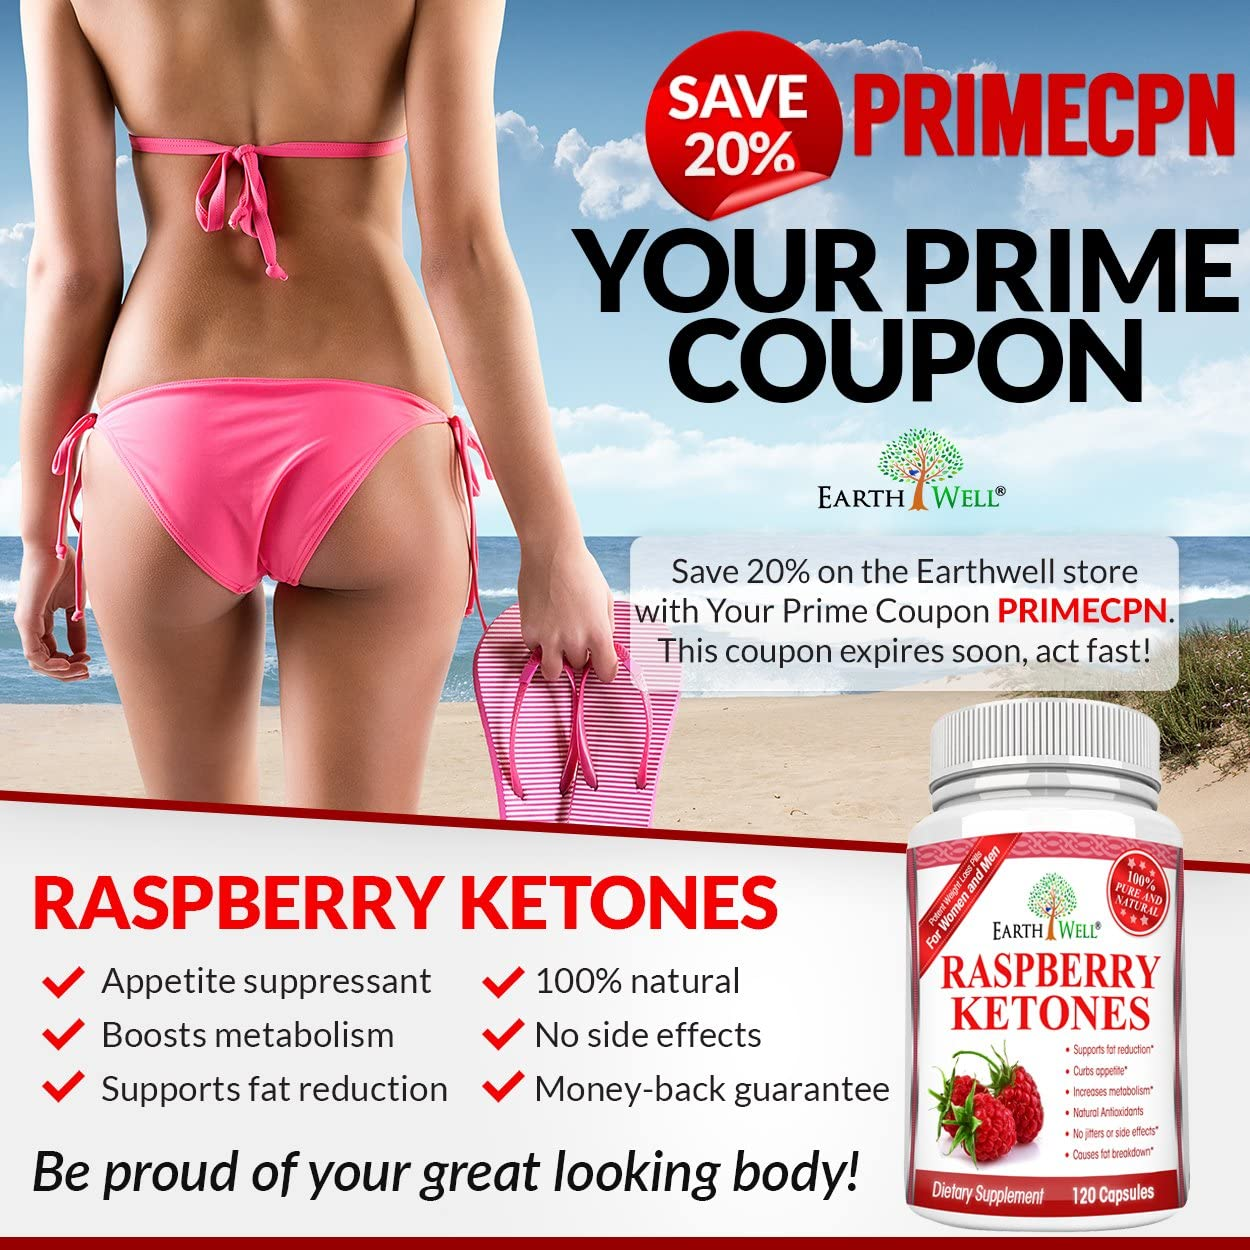 Amazon Com Raspberry Ketones Fast Weight Loss Pills That Work Best Fat Burner Health Supplement For Women Men Natural Safe Appetite Suppressant All Body Types Potent 120 Dietary Capsules